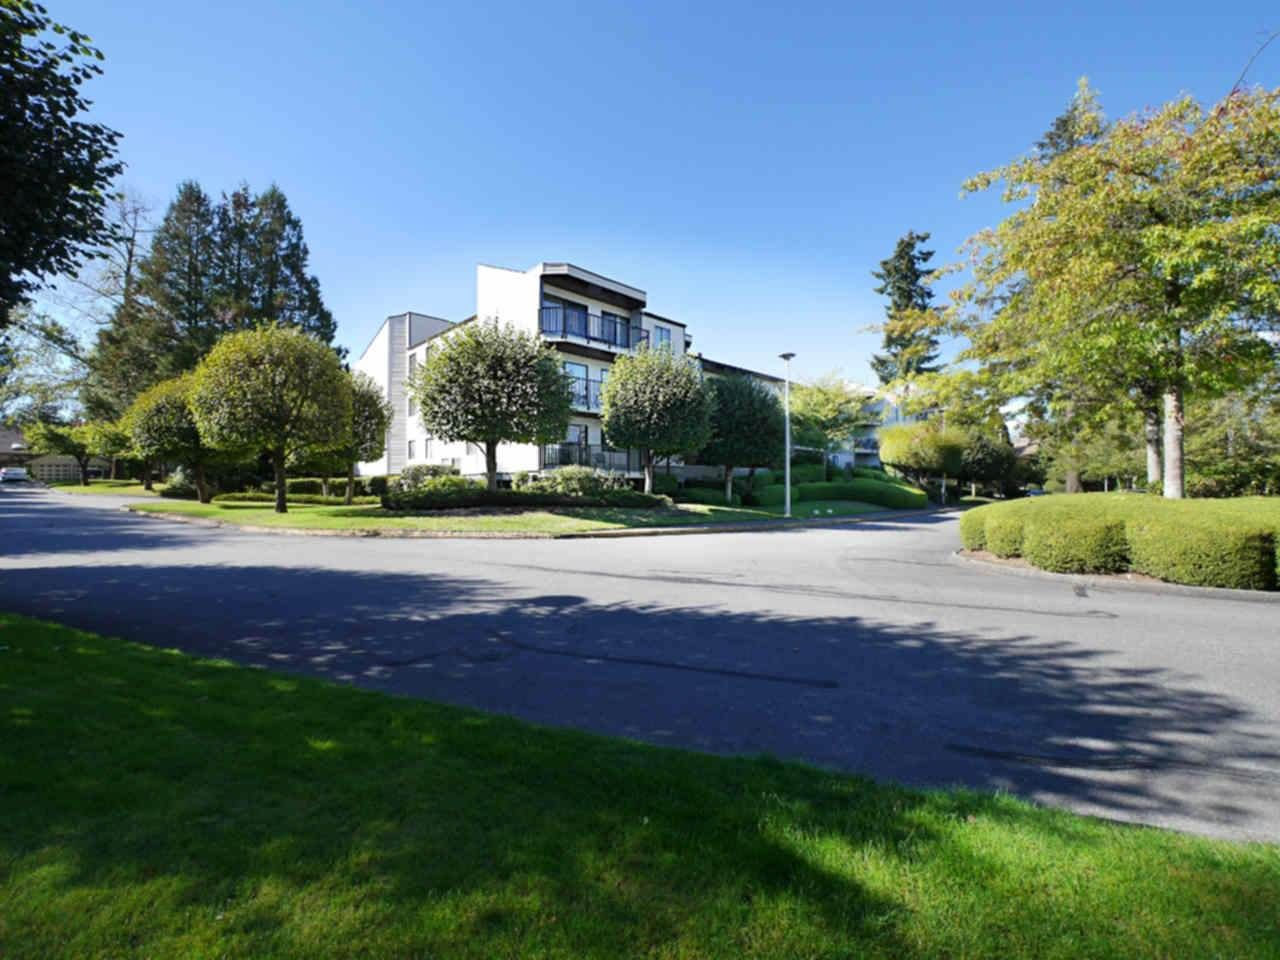 """Main Photo: 213 9952 149 Street in Surrey: Guildford Condo for sale in """"Tall Timbers"""" (North Surrey)  : MLS®# R2111678"""